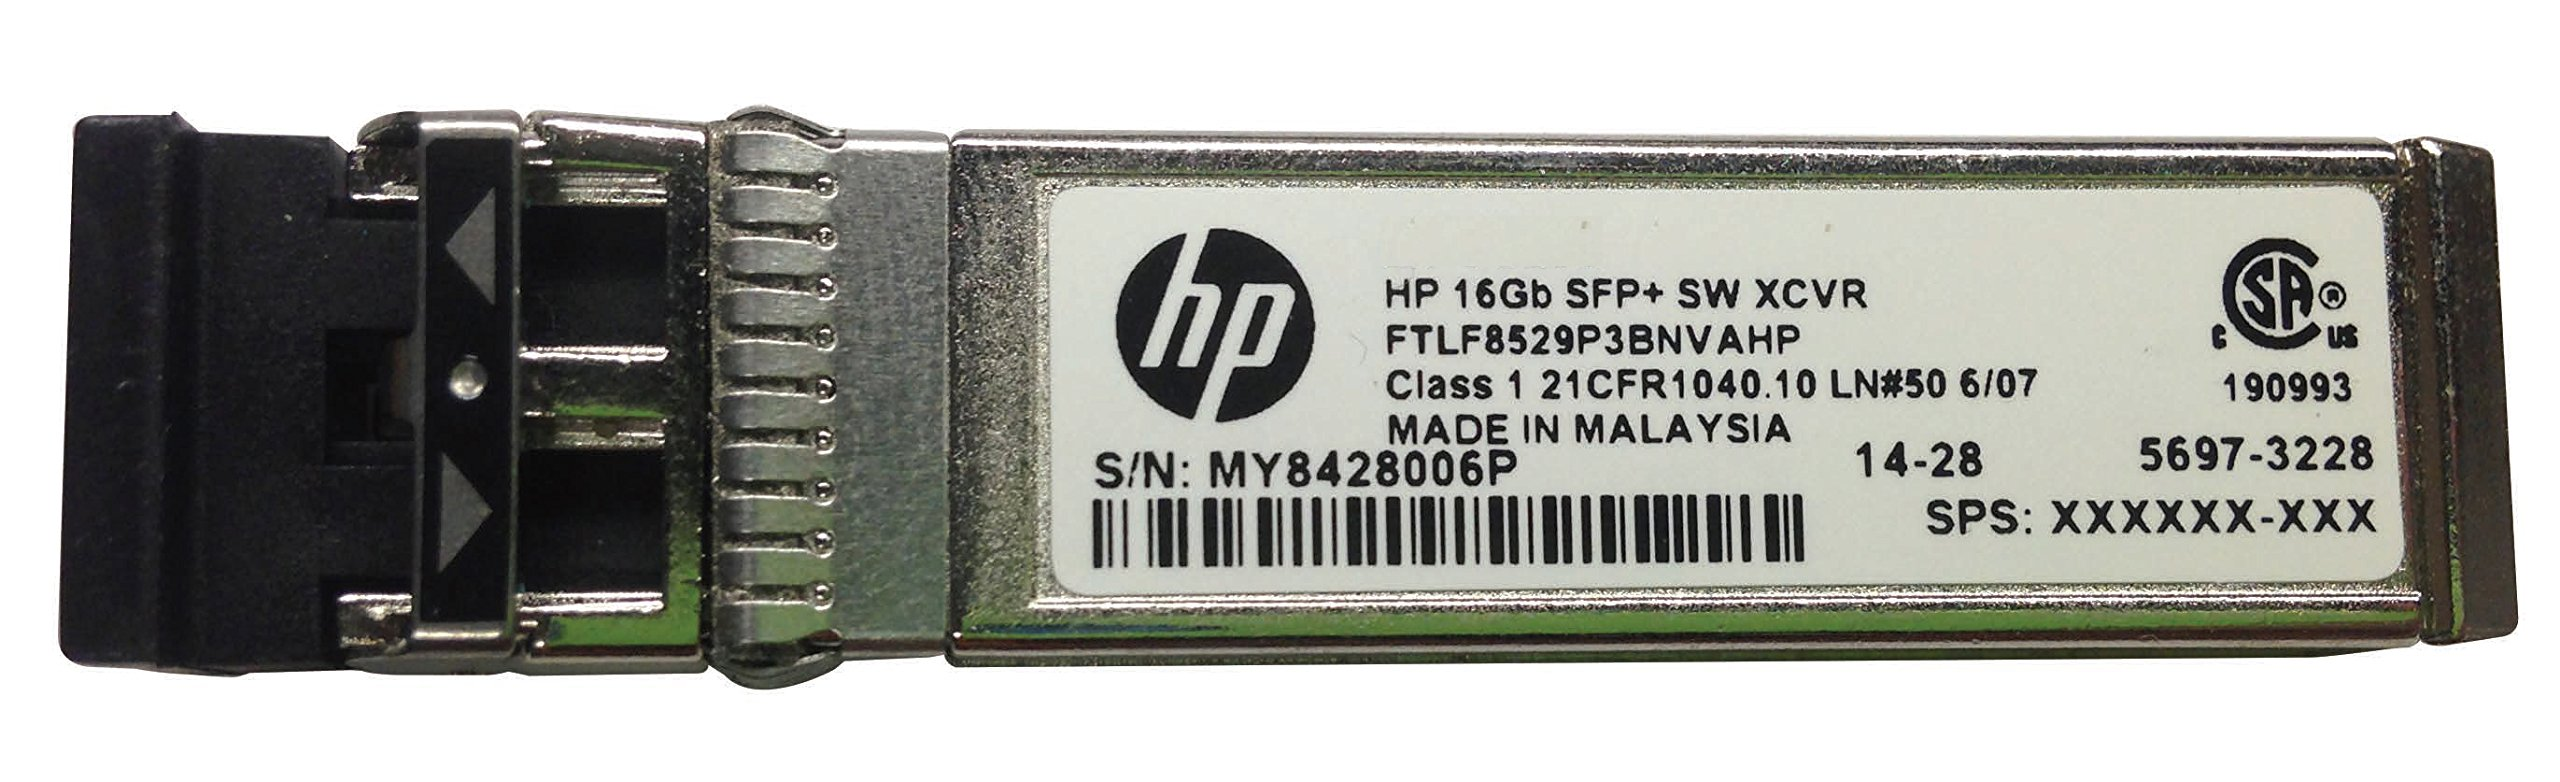 HP QW923A SFP+ Transceiver Module, 1x10GBase-X16 by HP